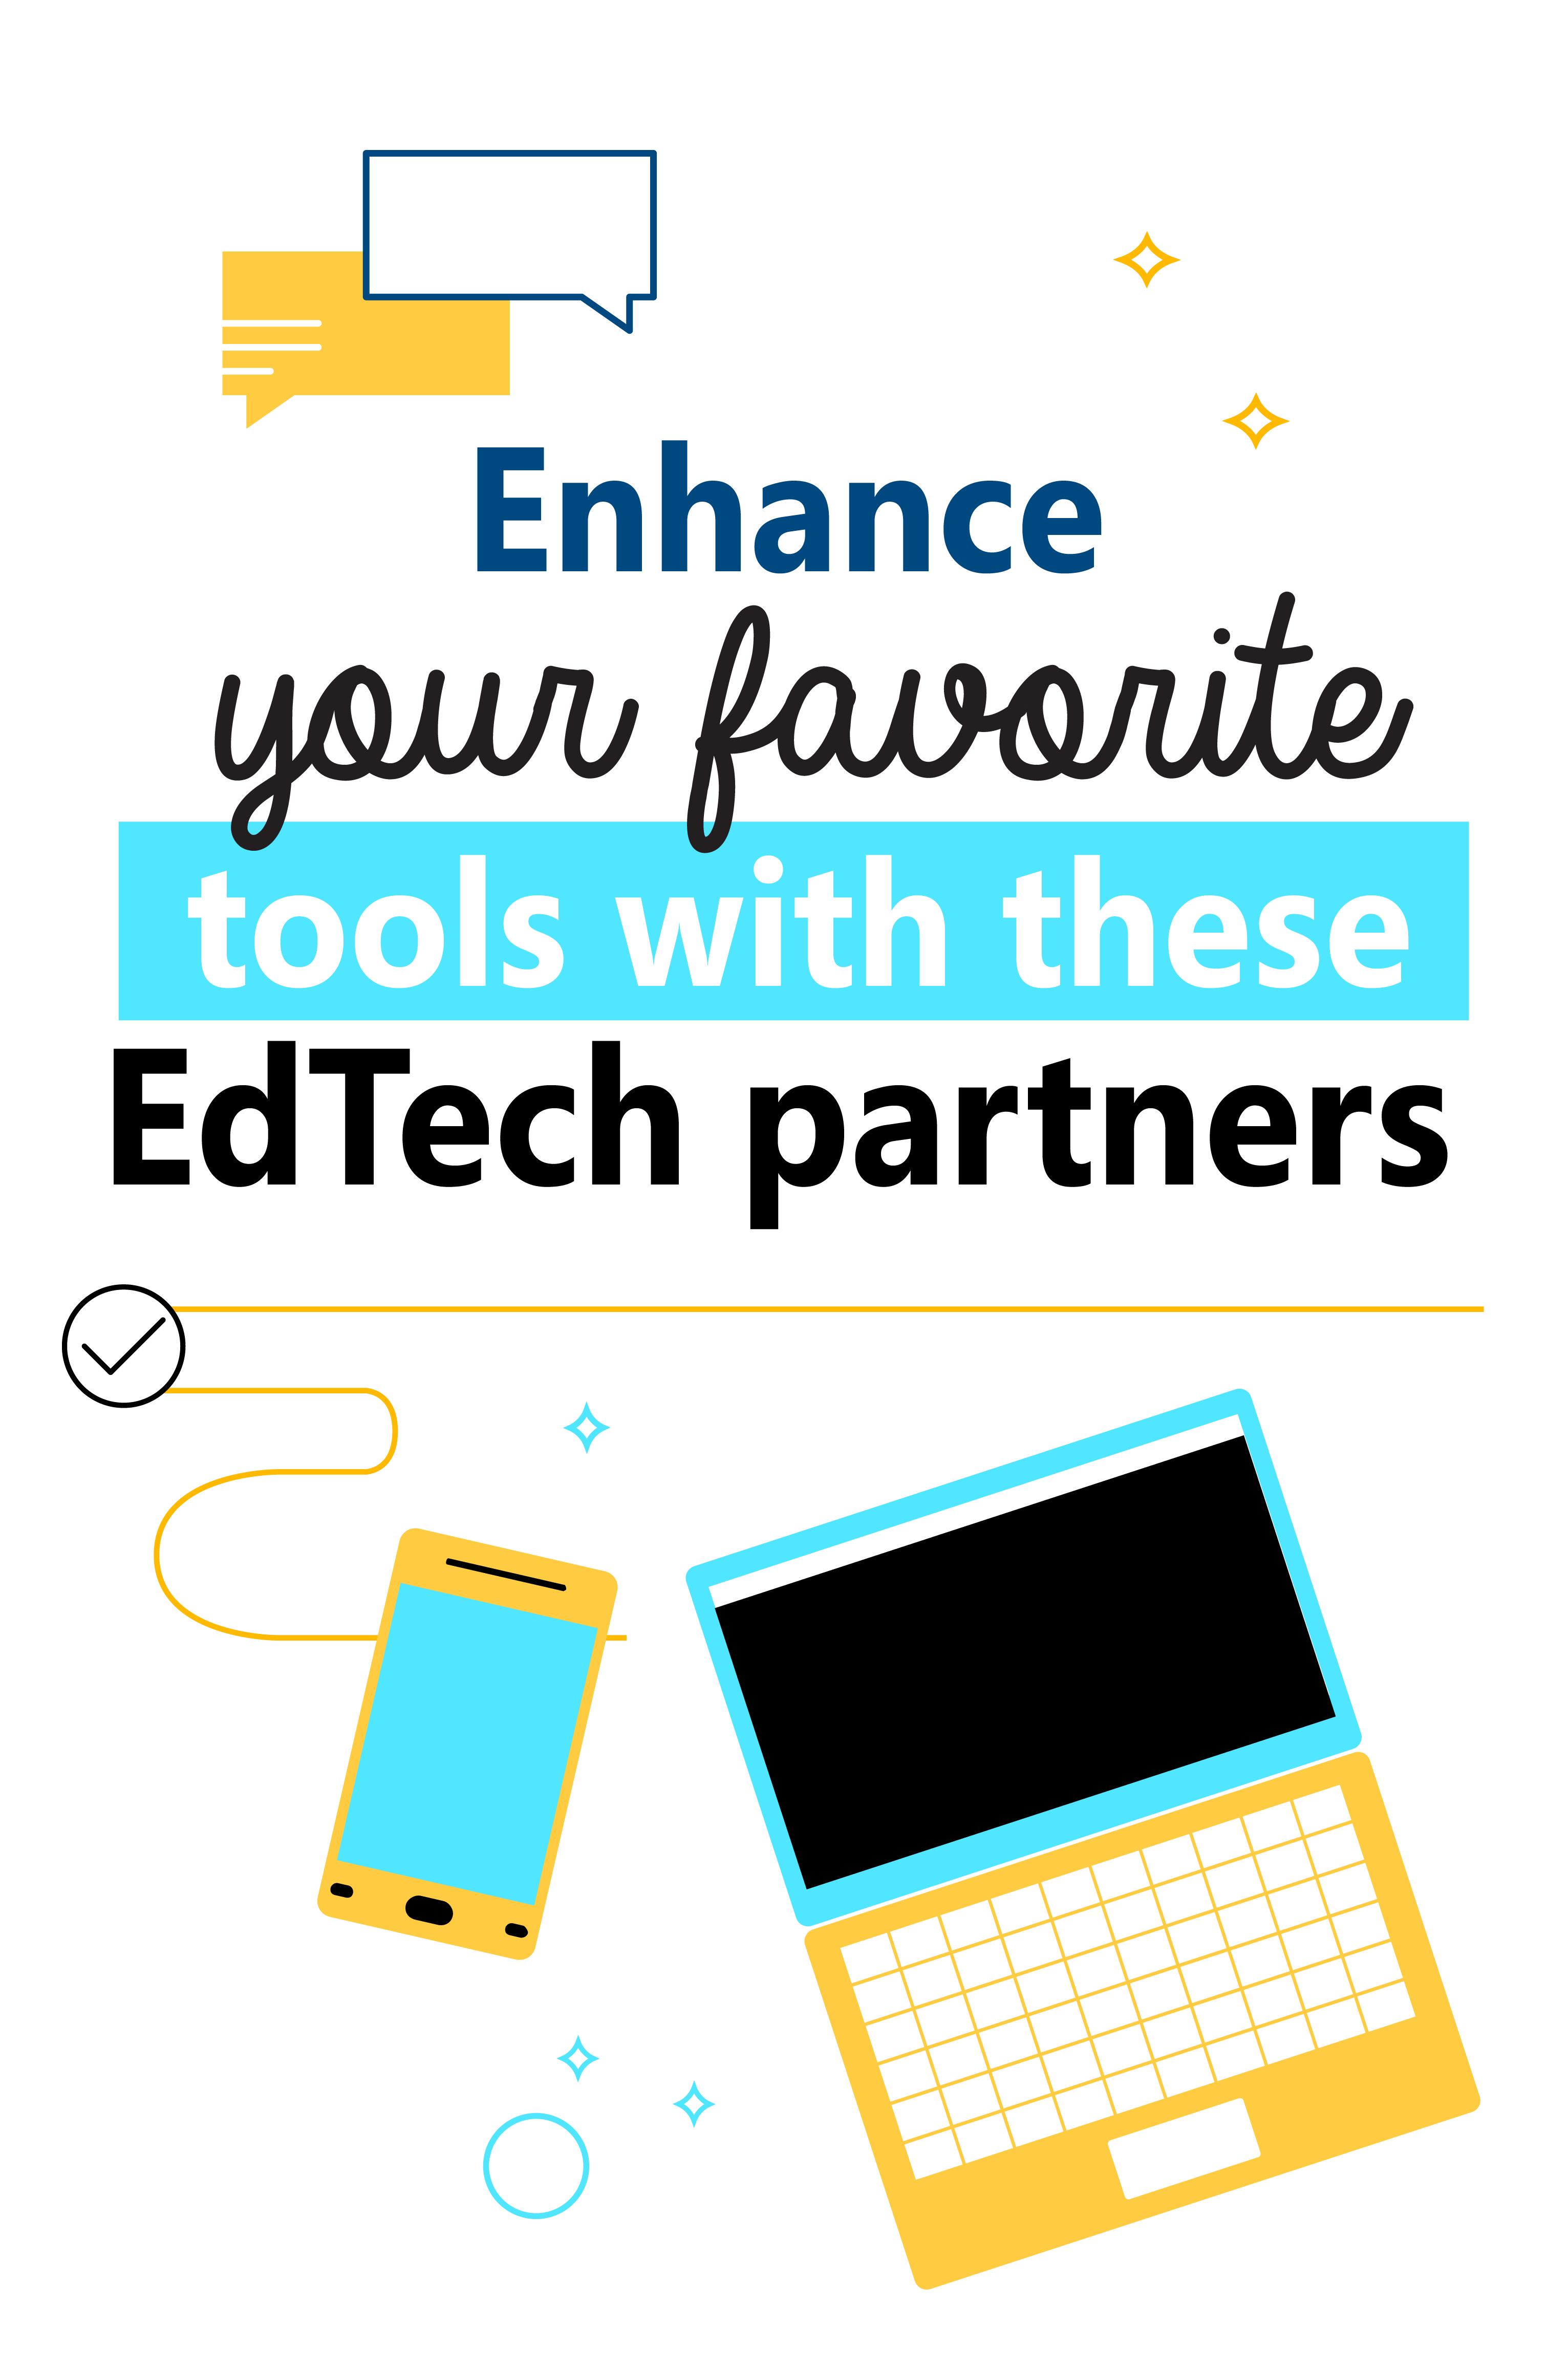 There are so many great educational technology resources